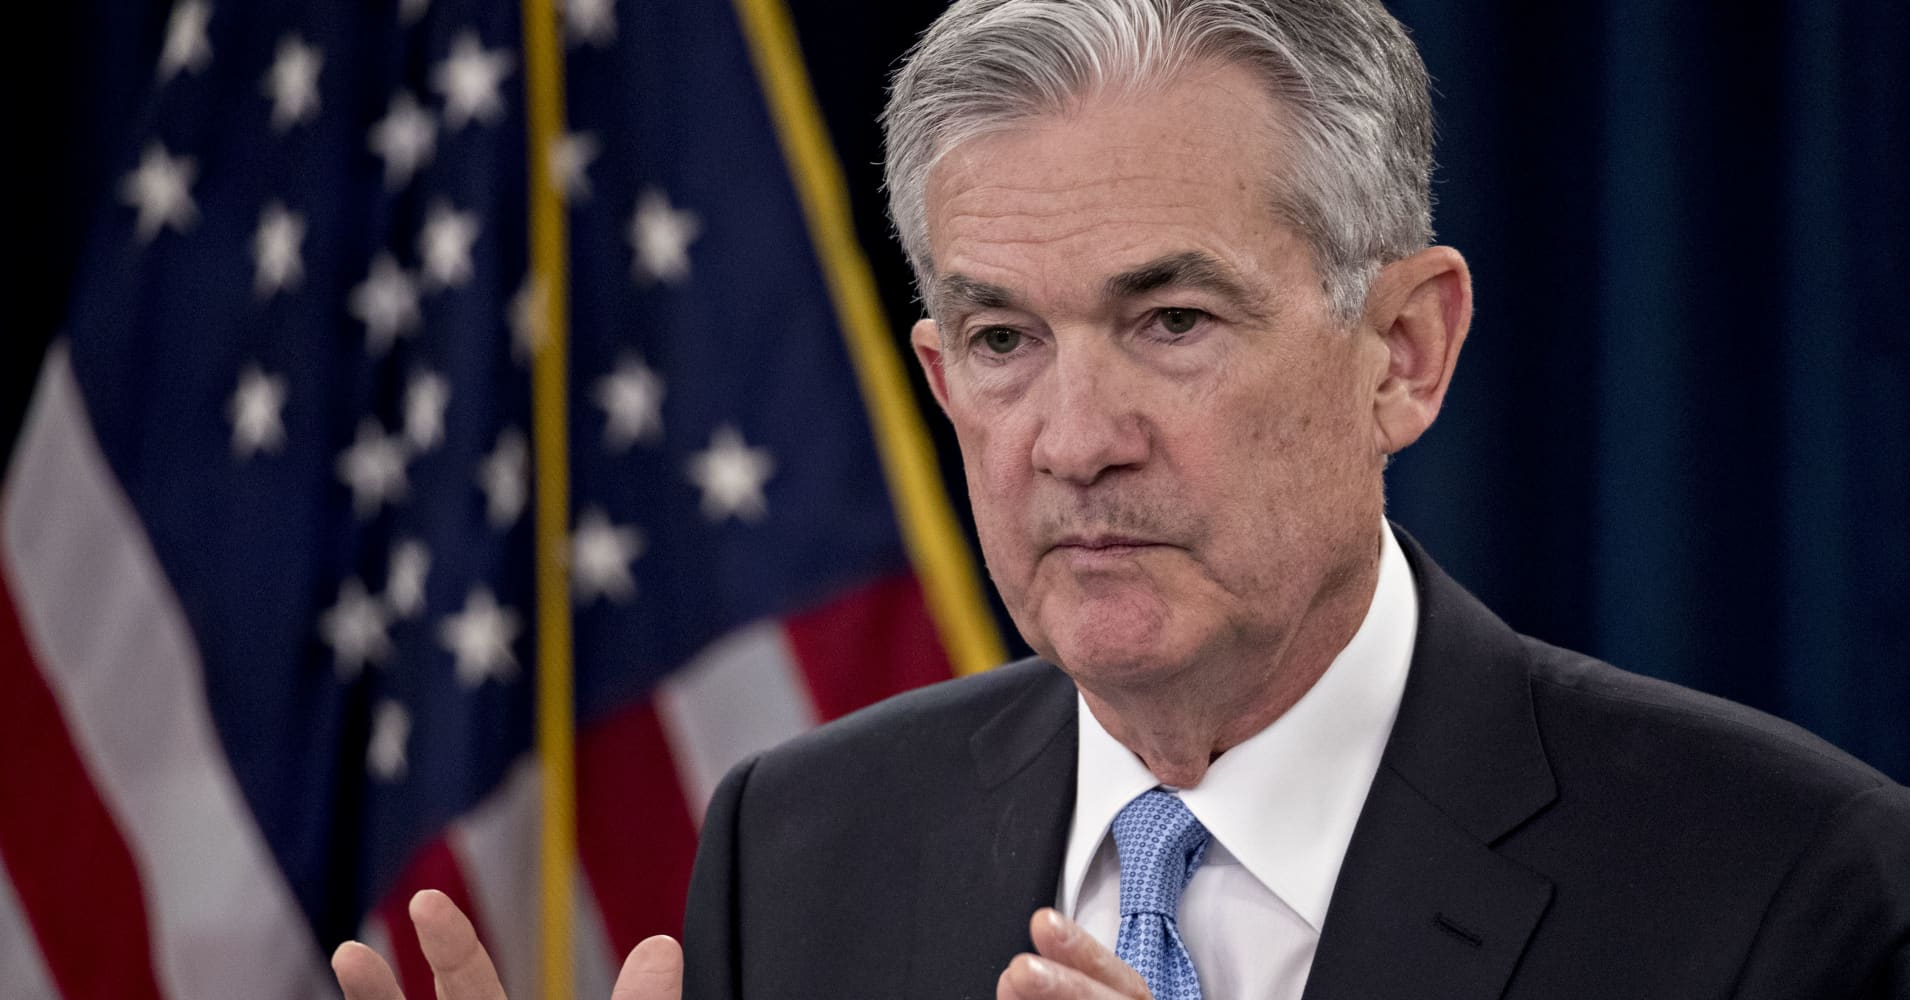 The Fed is 'not yet done' with rate hikes, according to S&P Global Ratings